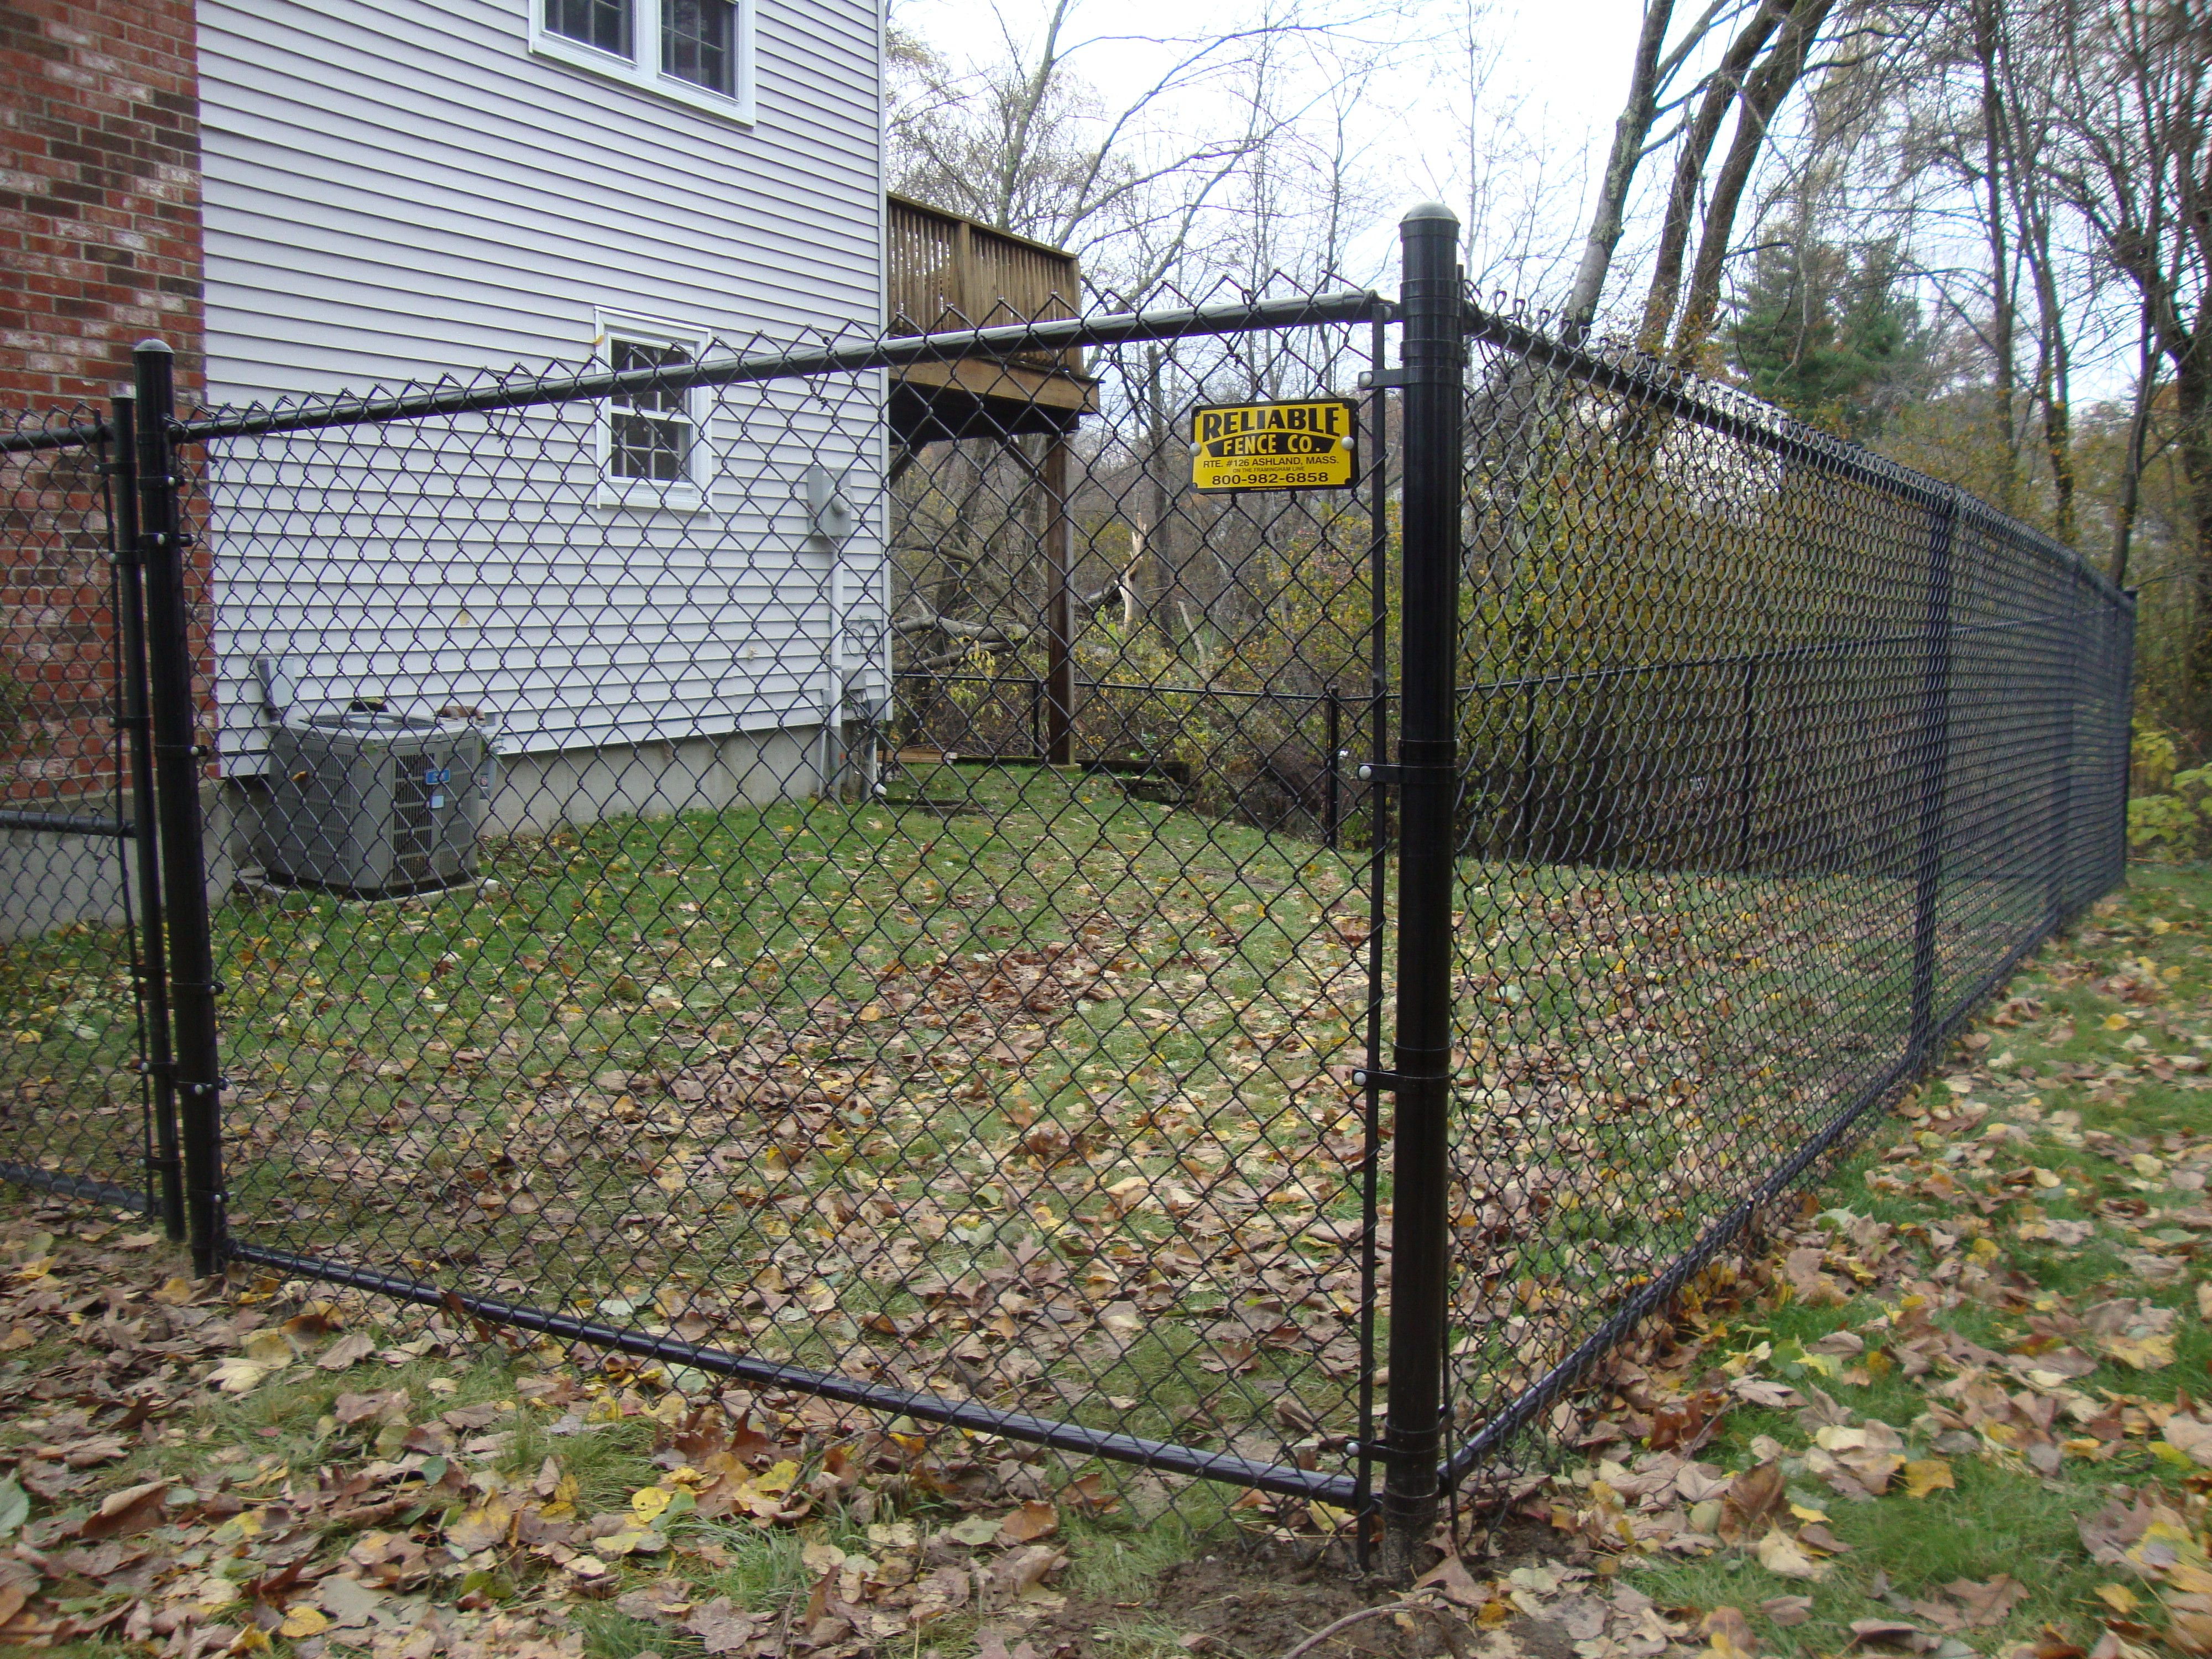 5 High All Black Vinyl Coated Chain Link With Top And Bottom Rail Chain Link Fence Cost Chain Link Fence Black Chain Link Fence